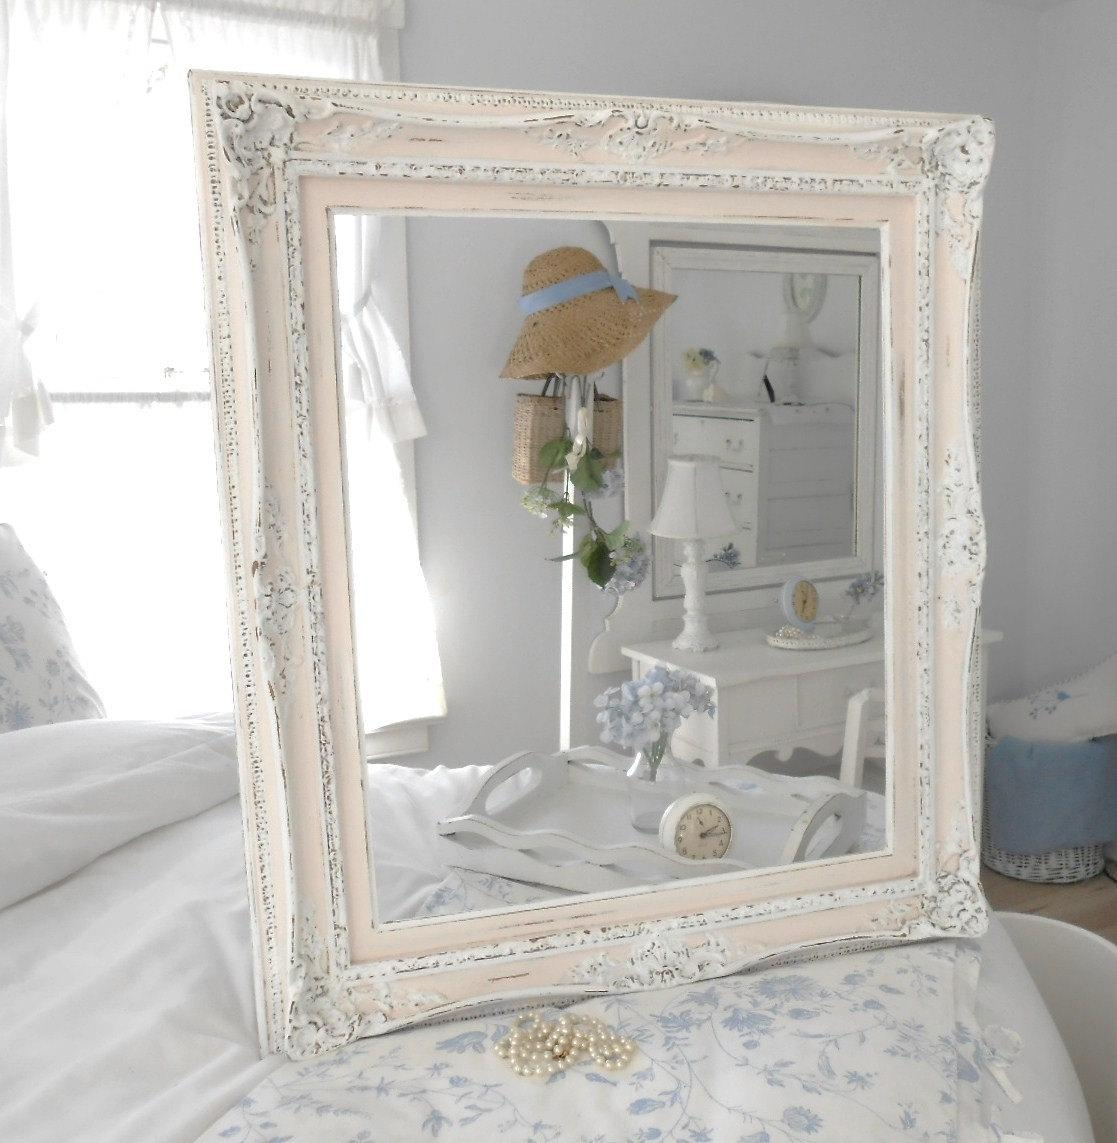 Shabby Chic Archives | Smooth Decorator Regarding Shabby Chic White Mirrors (Image 11 of 20)